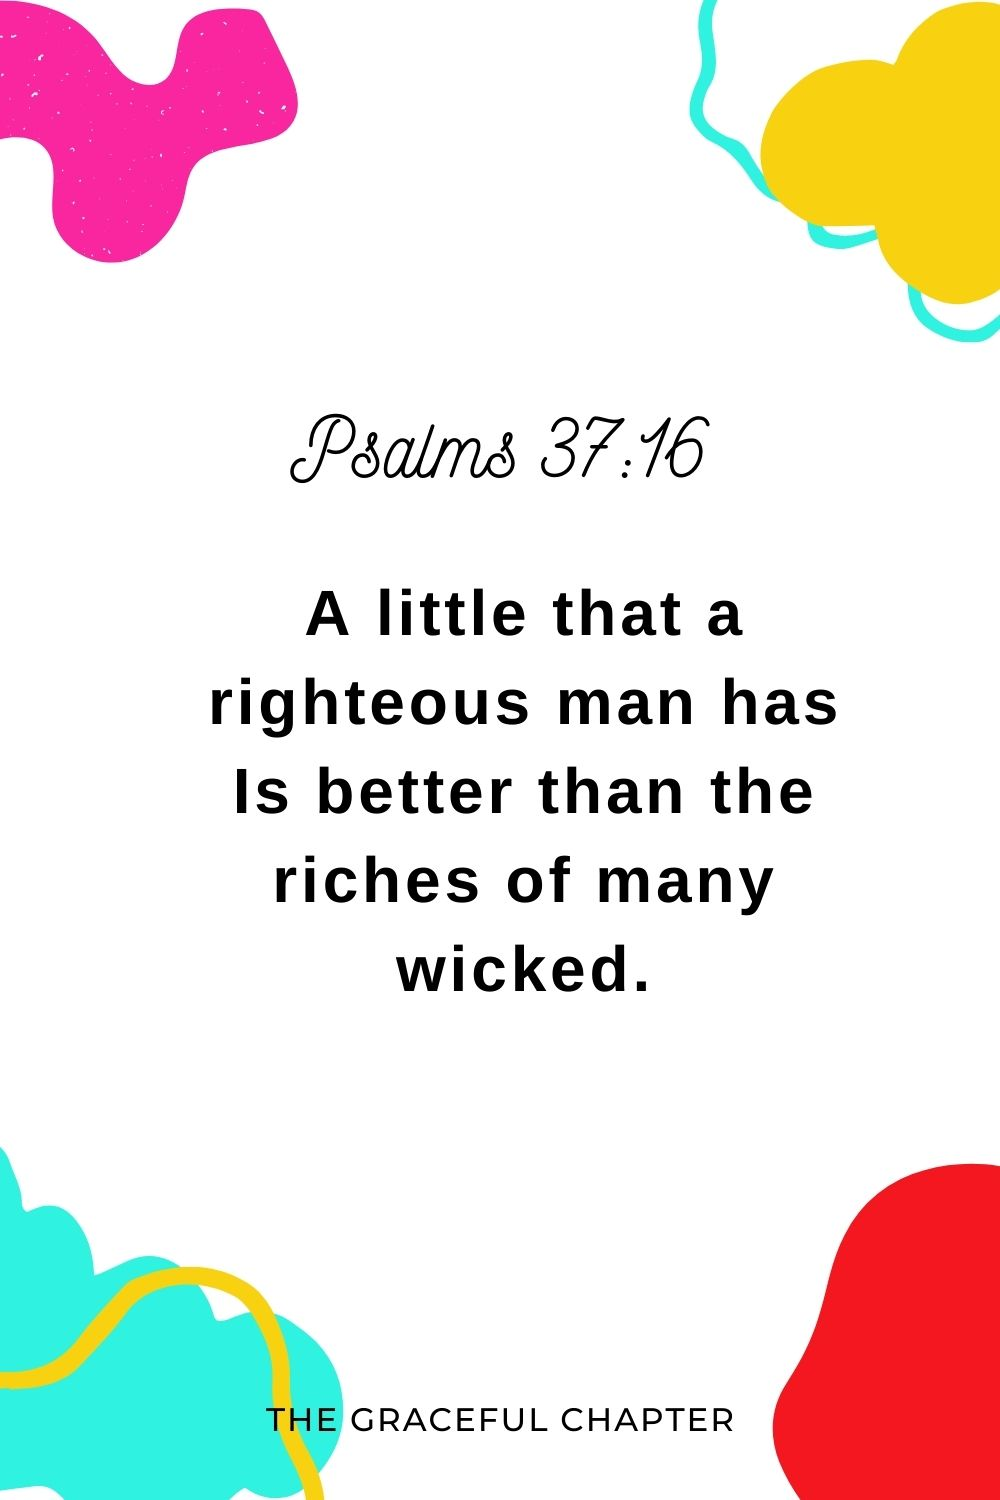 A little that a righteous man has Is better than the riches of many wicked. Psalms 37:16